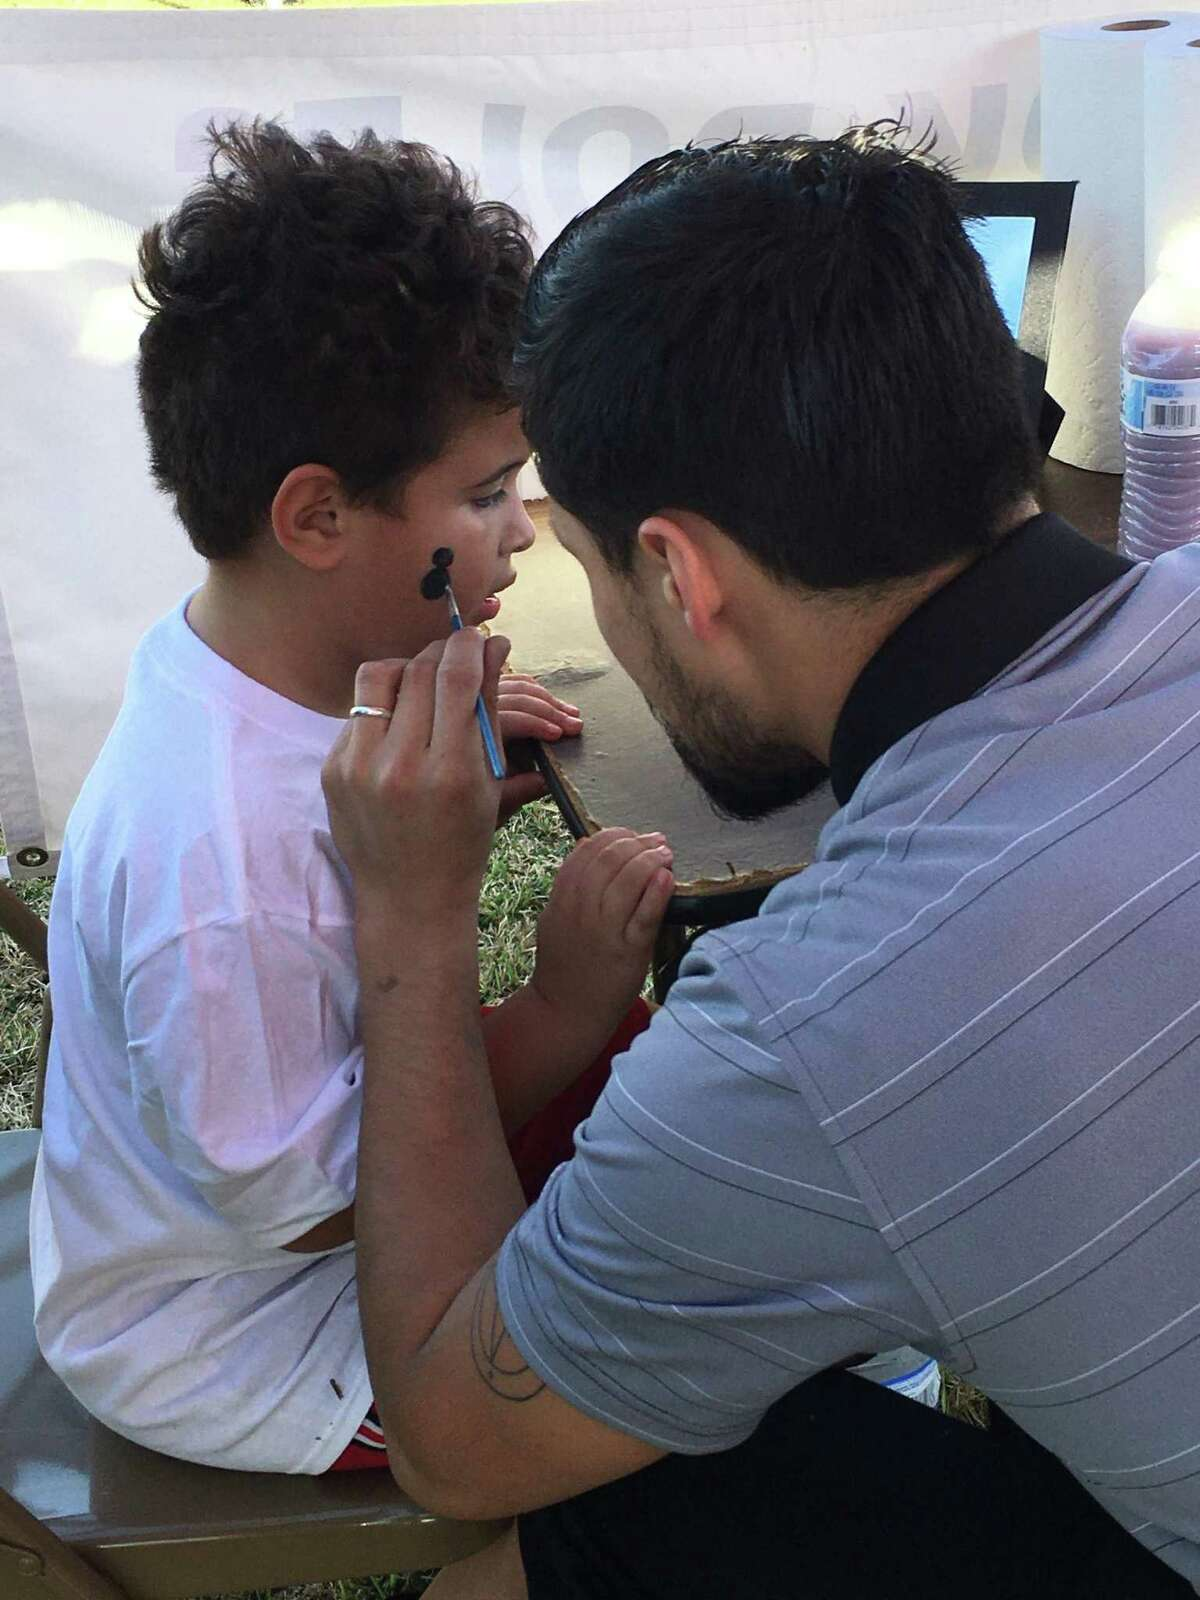 Adrian Morales, 4, has his face painted by Max Dalton at the fourth annual Richmond Pecan Harvest Festival. Jennifer Morales, Adrian's mom, said this year's festival was a big improvement over last year when the weather turned cold and rainy.